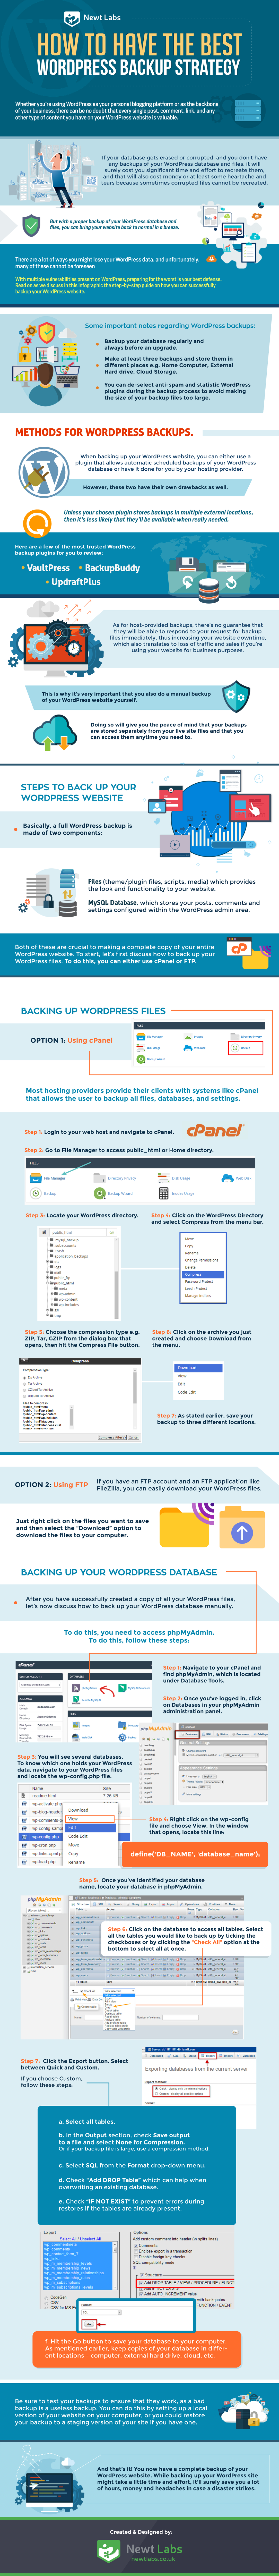 how to have the best wordpress backup strategy infographic